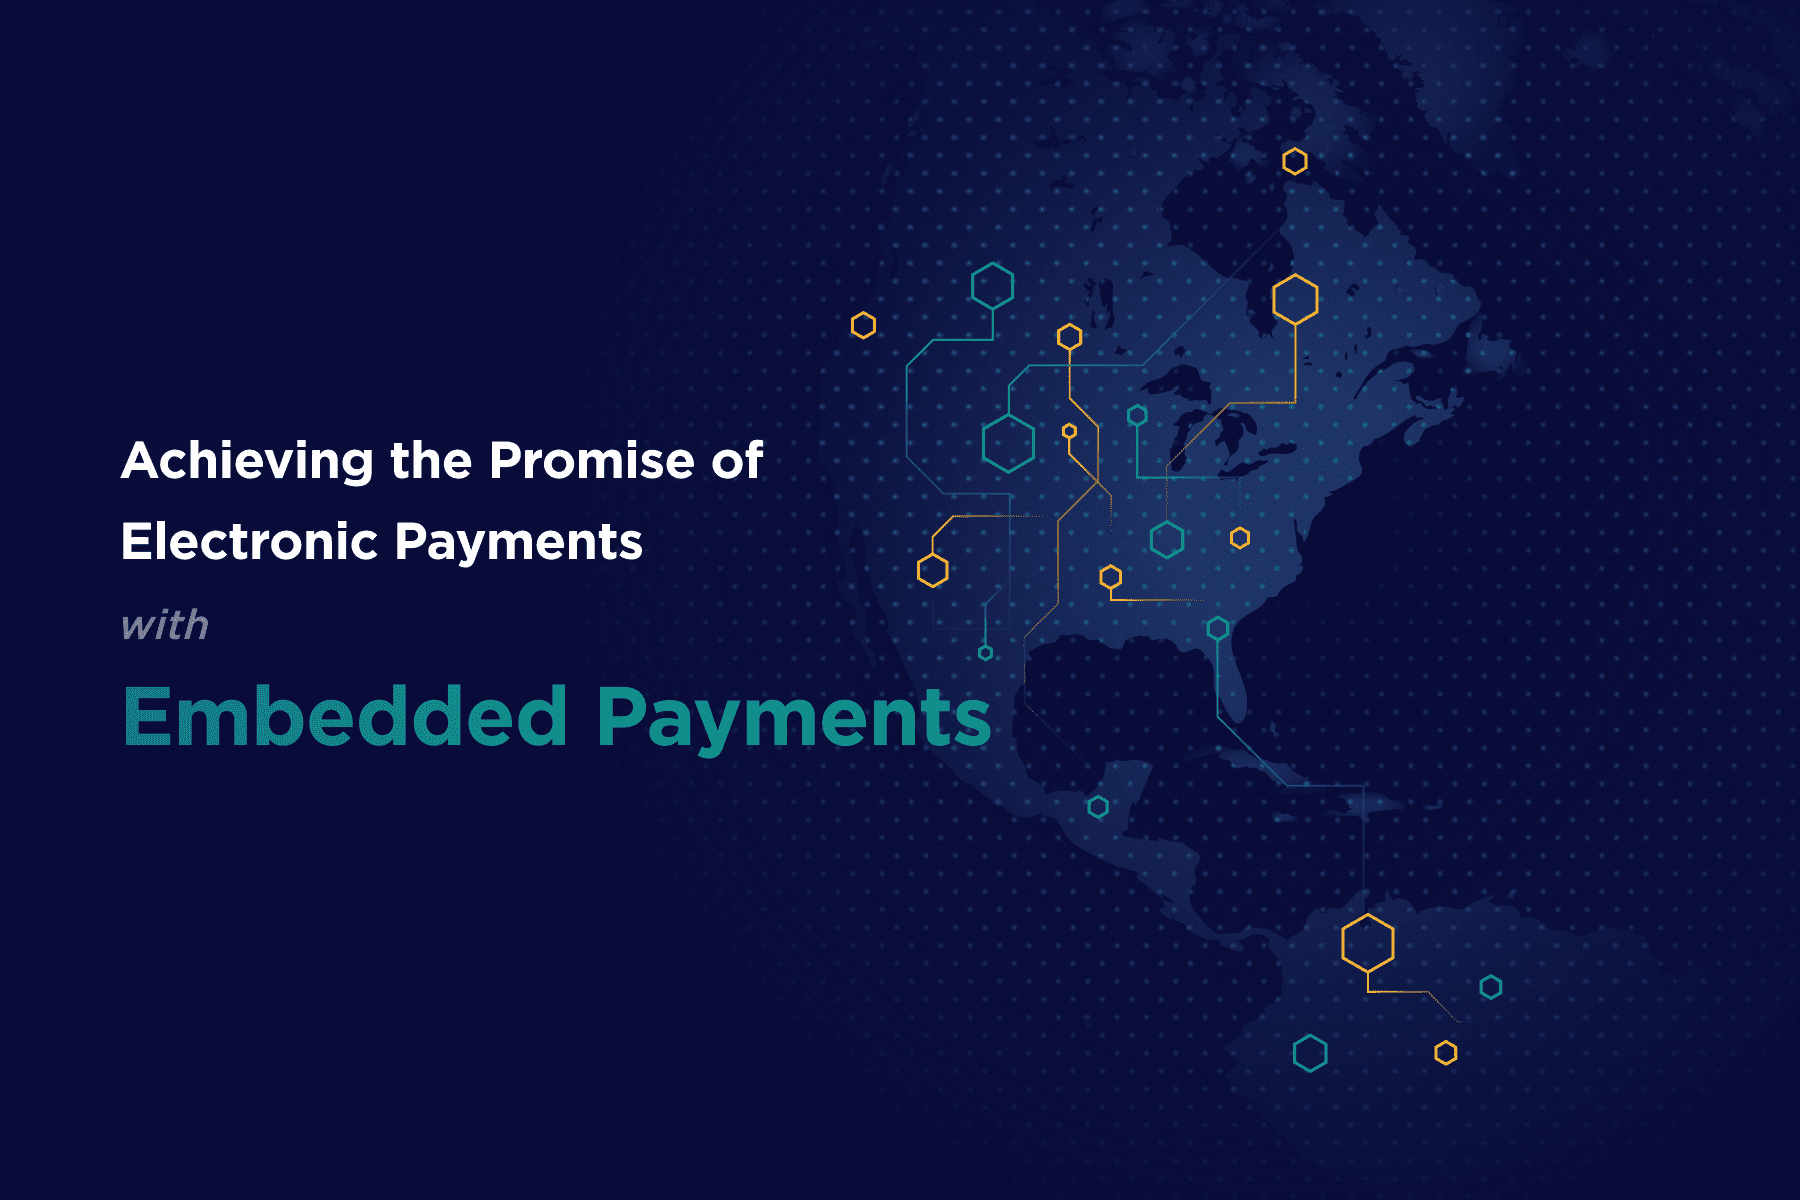 achieving-the-promise-of-electronic-payments-with-embedded-payments